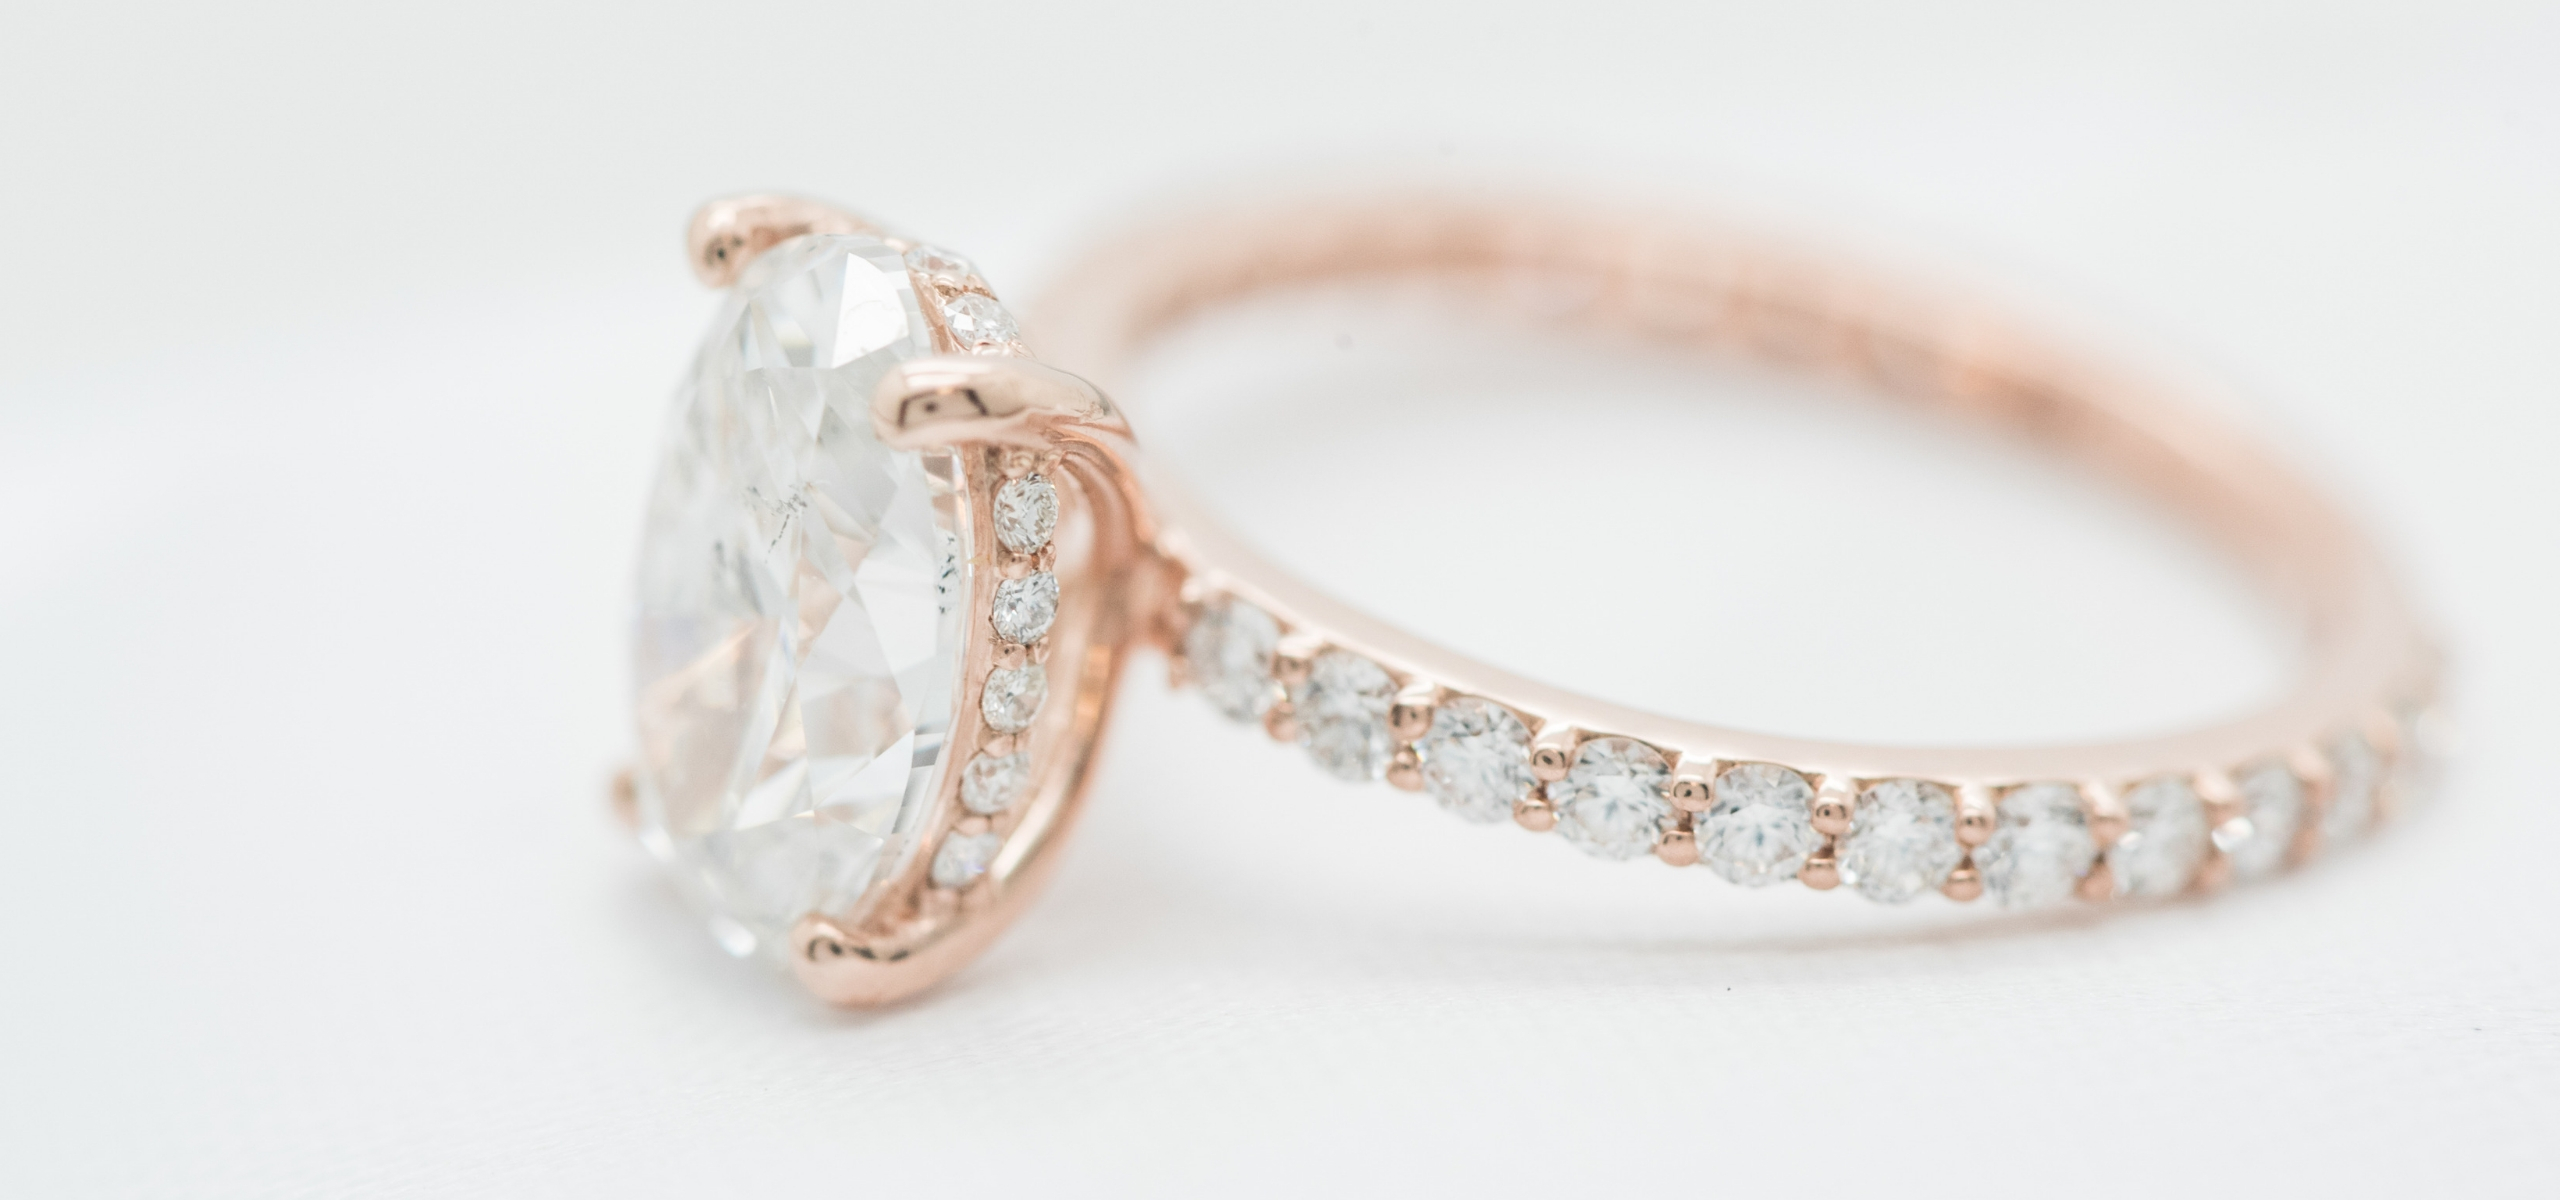 rose gold oval custom engagement ring with diamonds on the band and a hidden halo